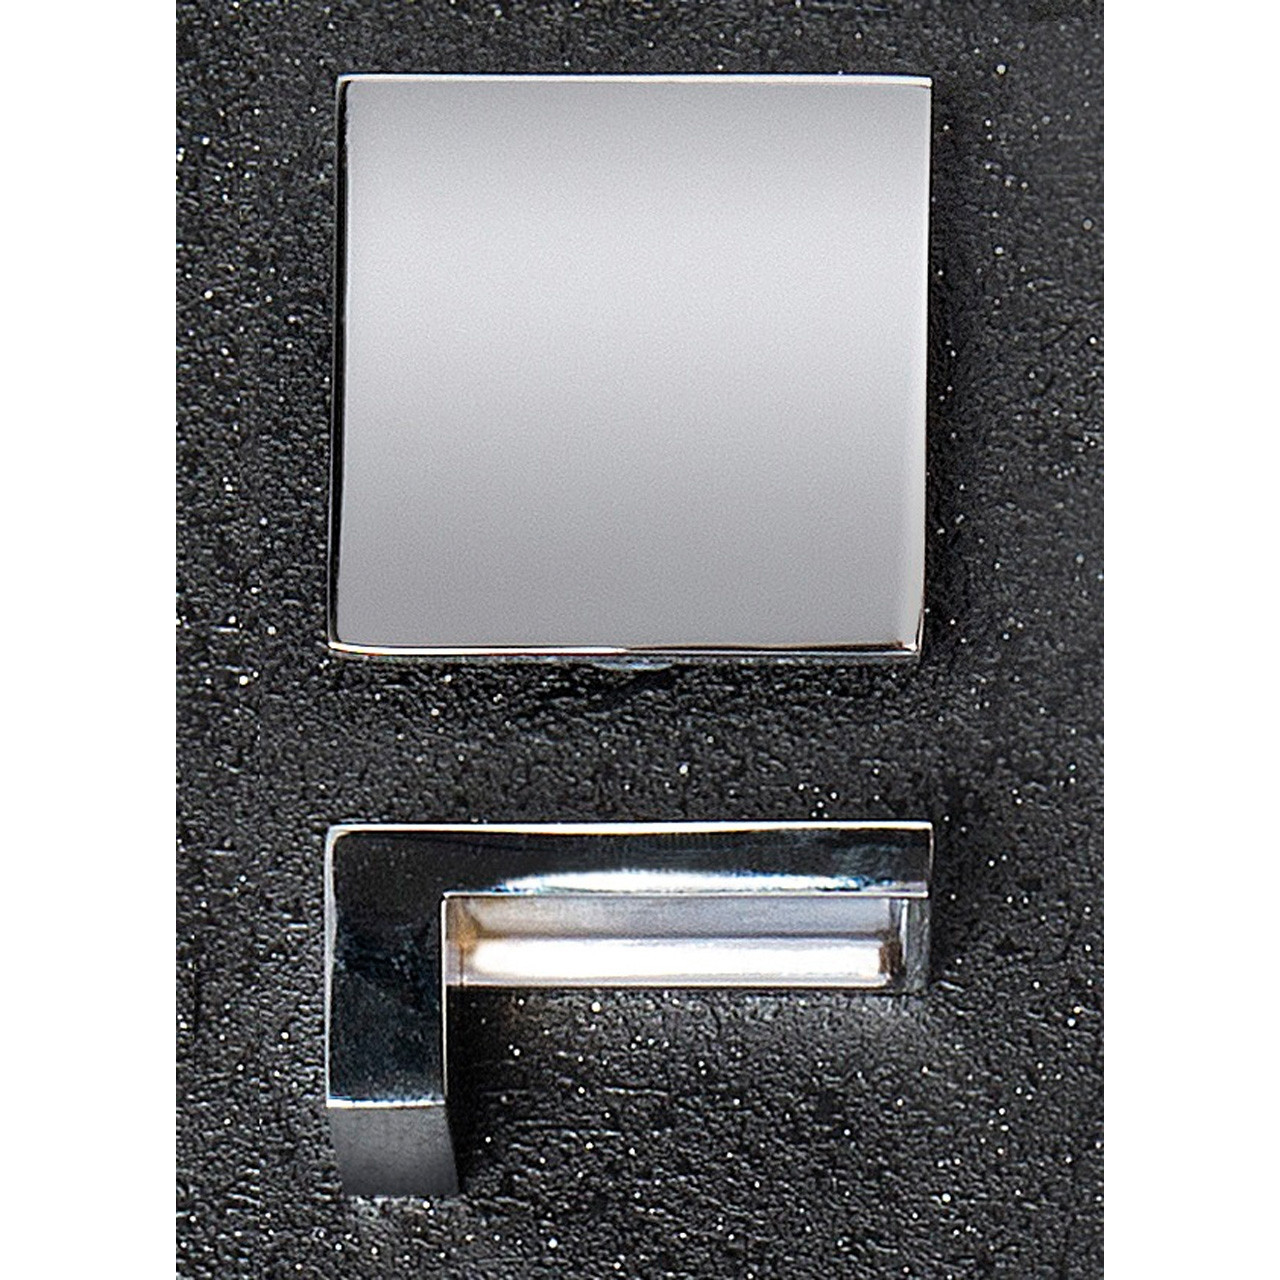 Hudson Reed Chrome Square Handle 50mm x 23mm - H098